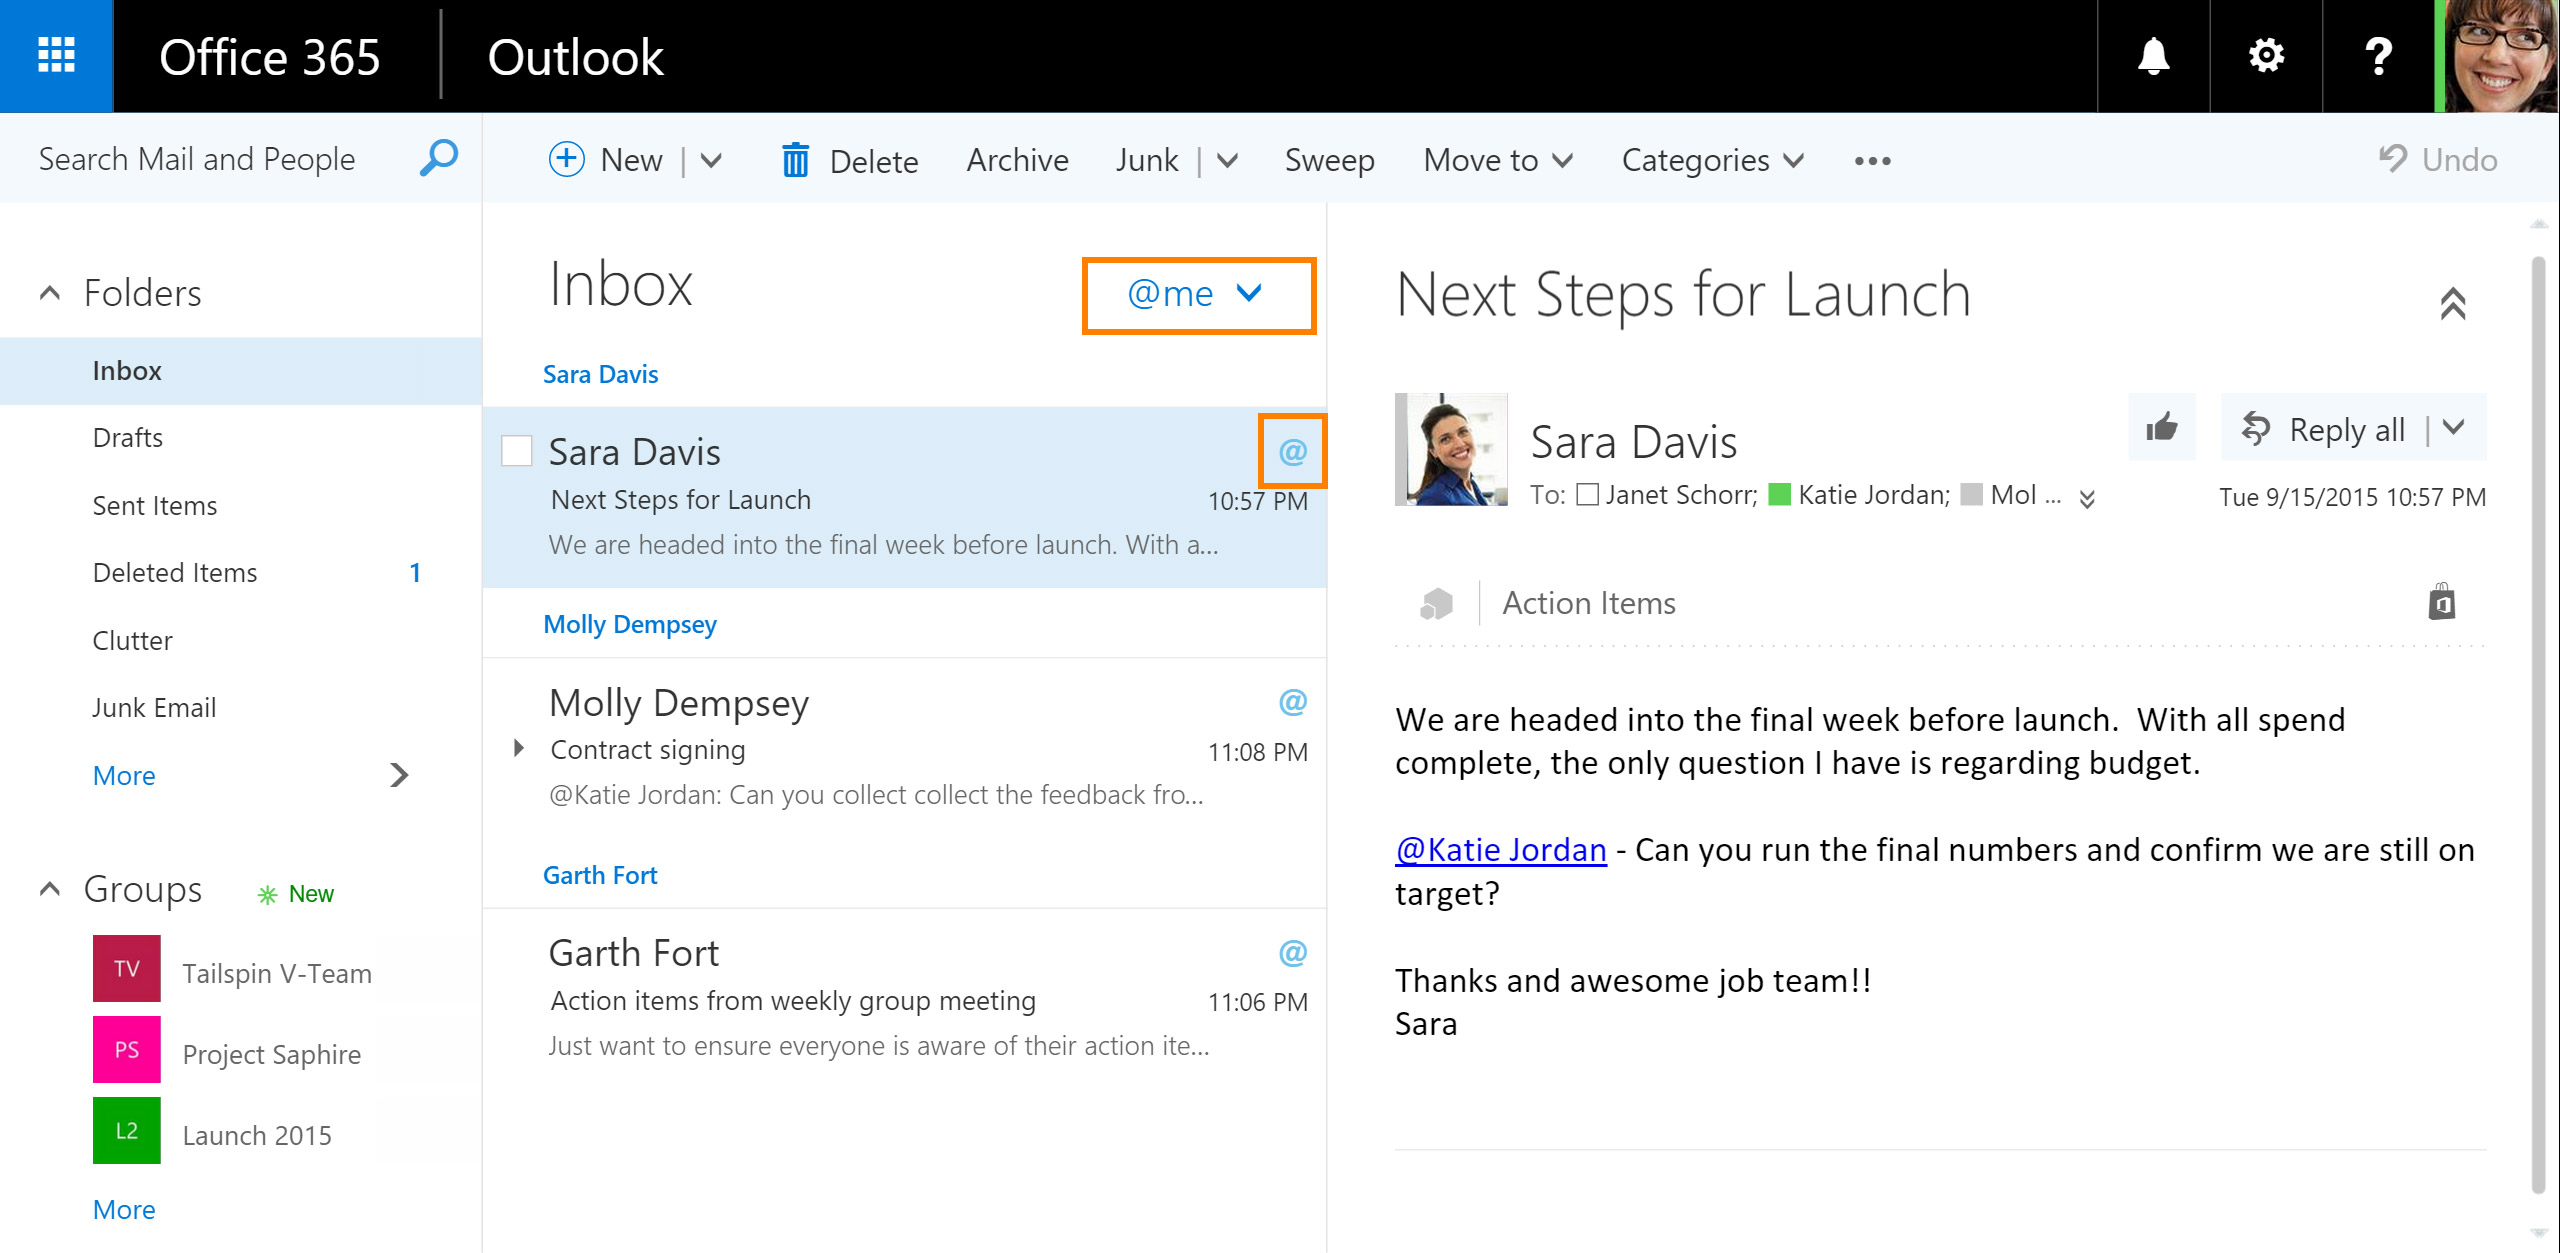 Outlook on the web borrows Facebook's Like and Twitter's @mention